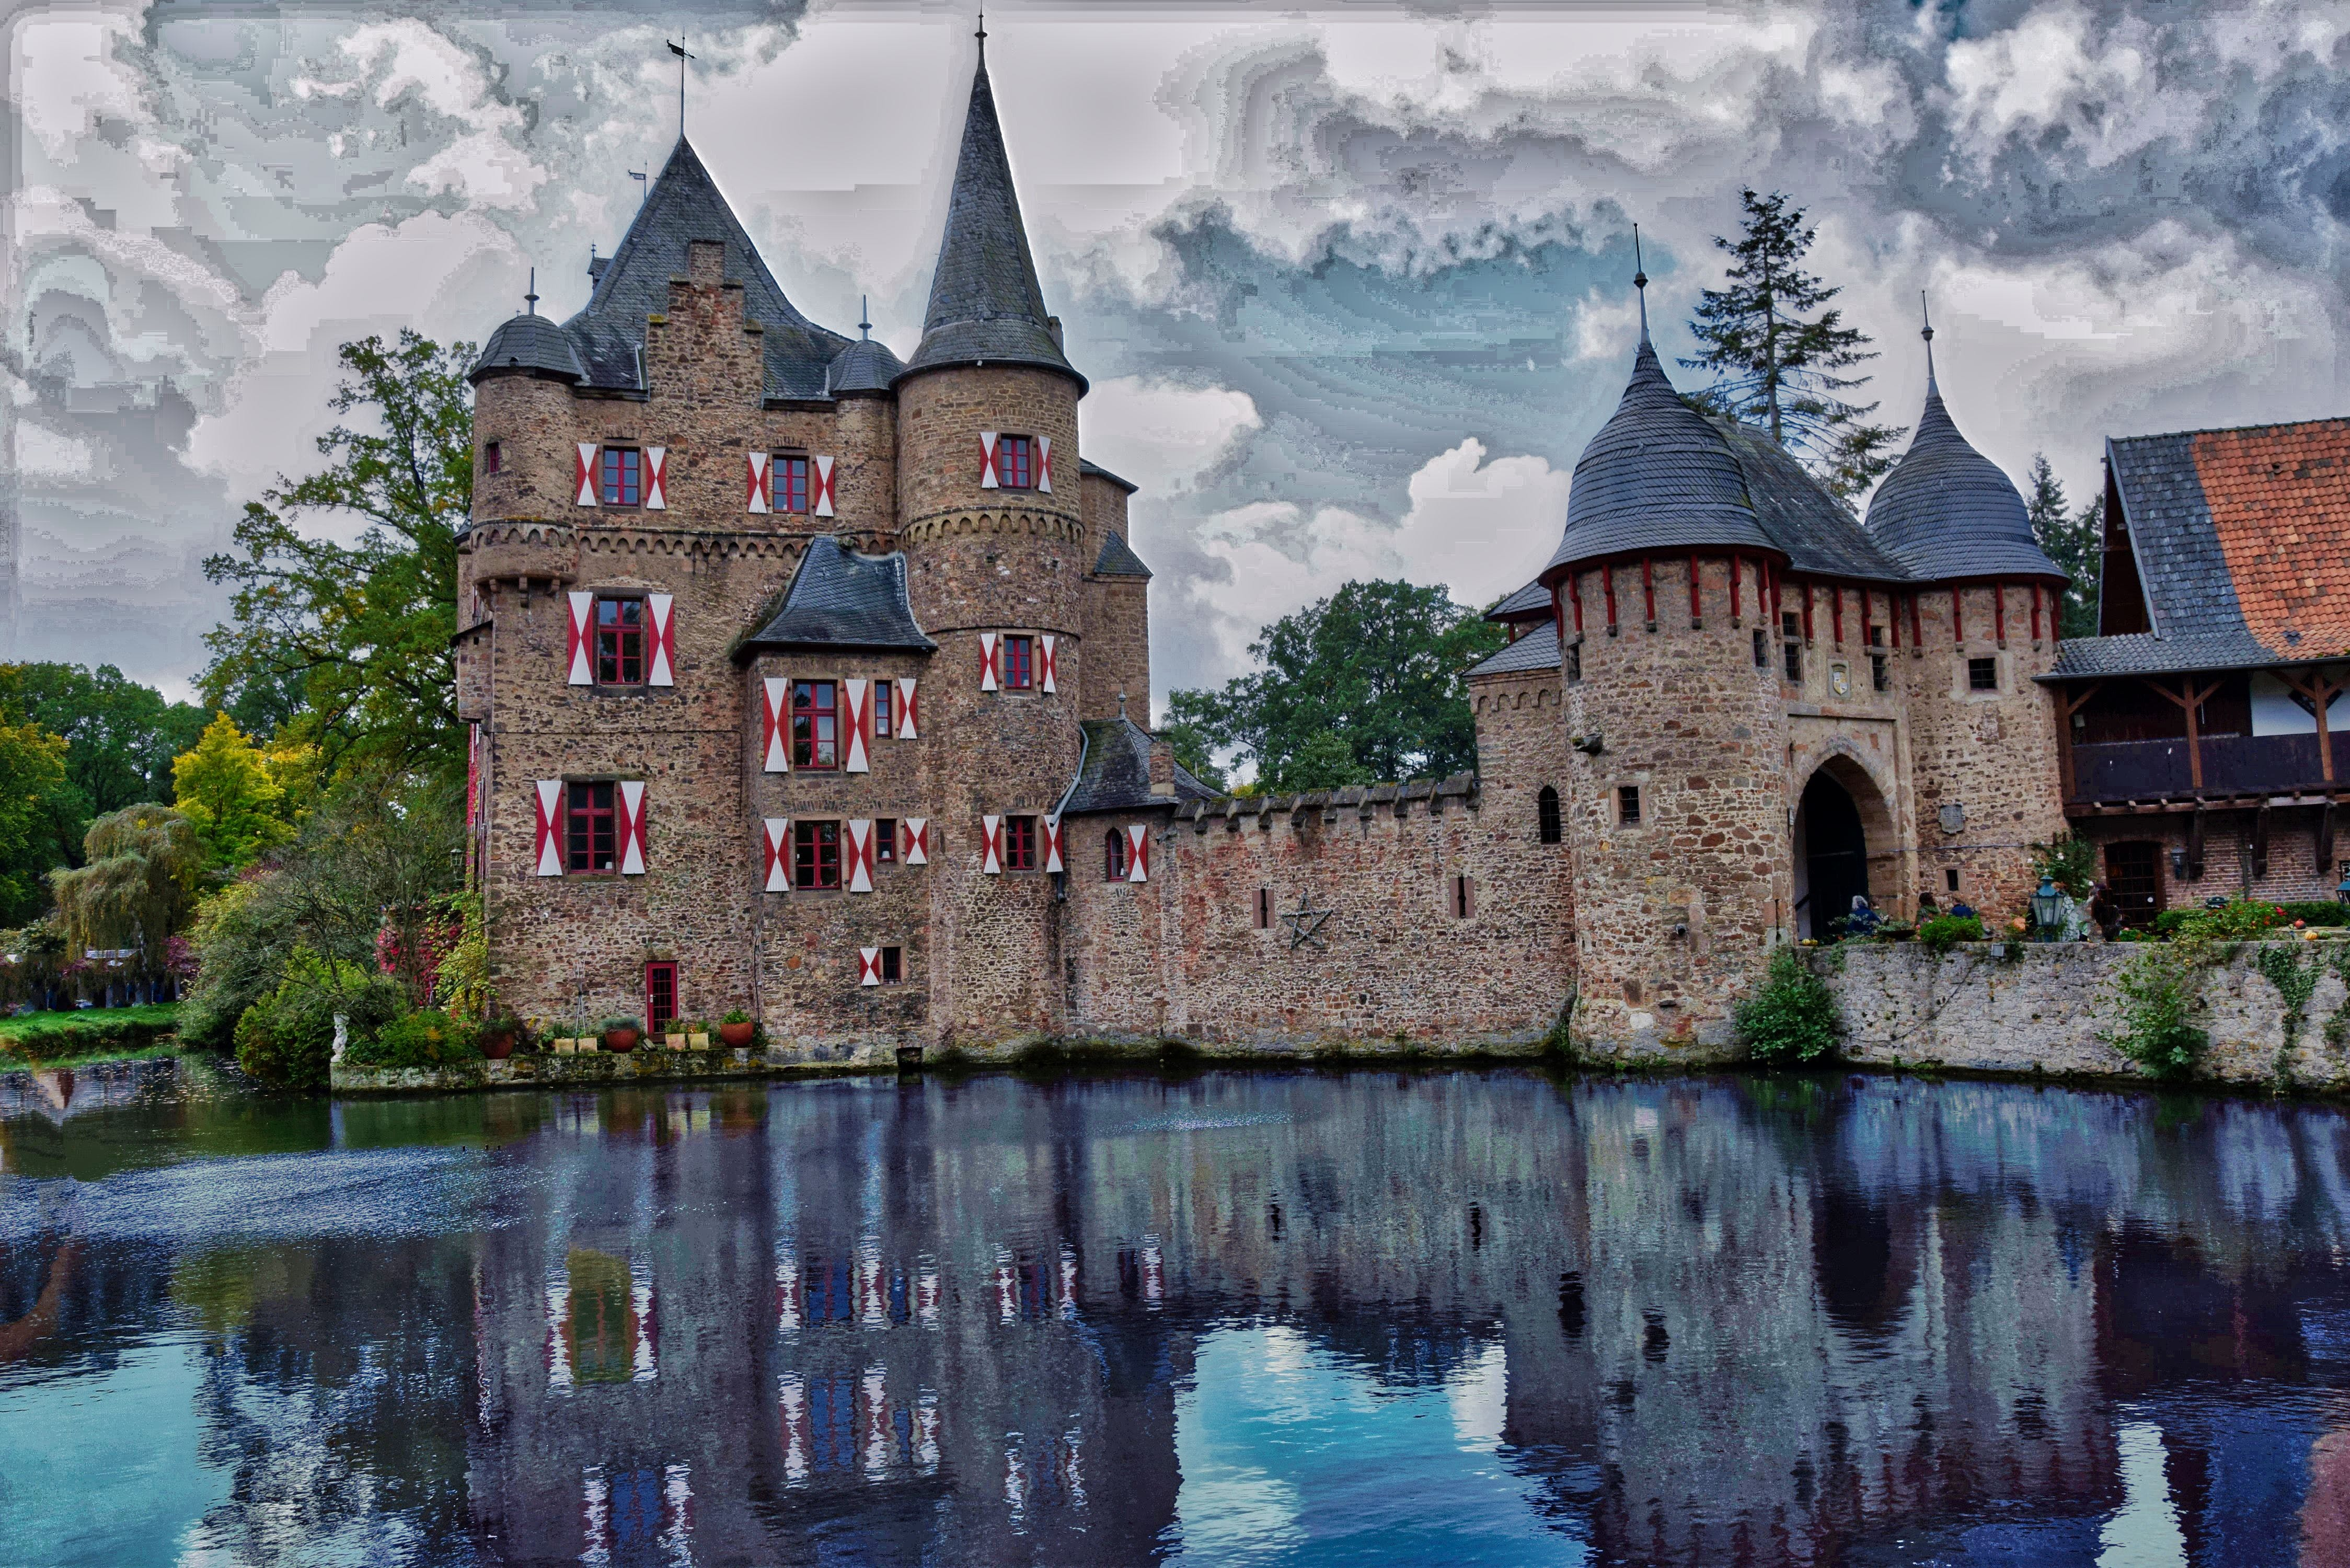 Concrete Castle Beside Body Of Water